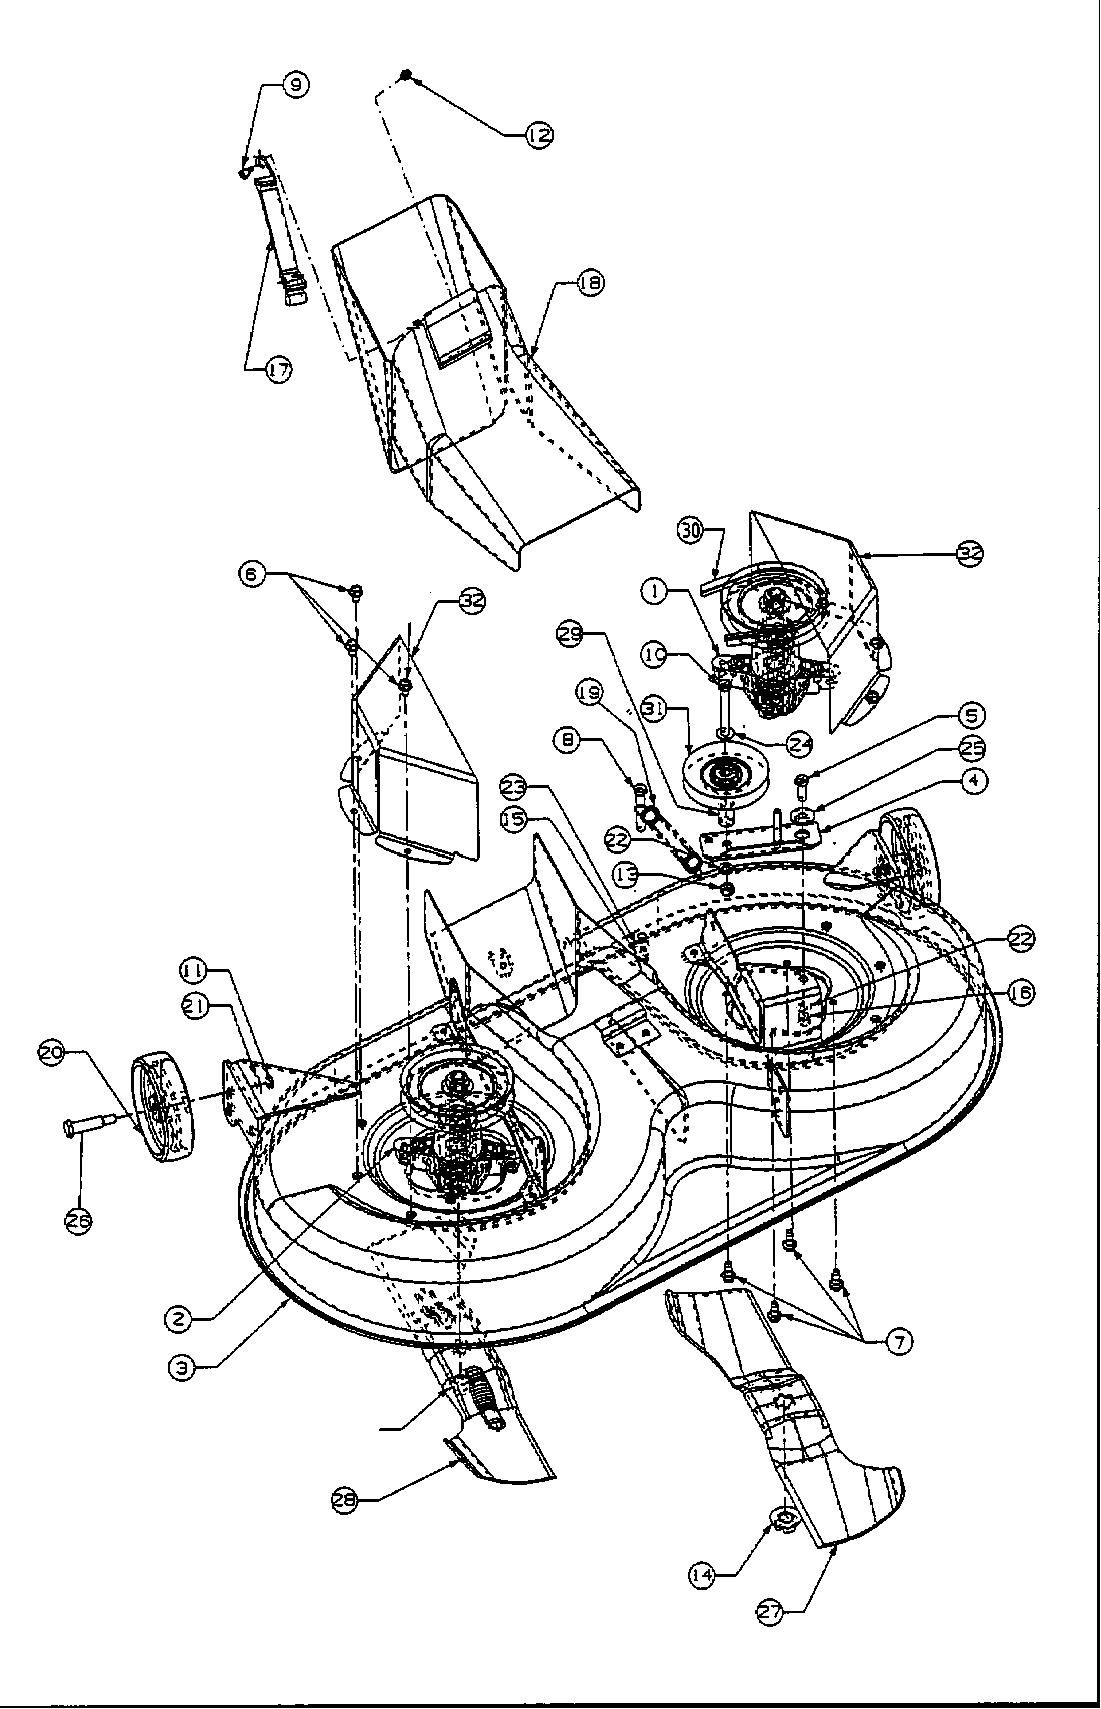 1978 Fairmont Wiring Diagram as well 1995 Buick Skylark Fuse Box additionally Ford Escape Parts List besides Volvo Xc90 Fuel Pump Location together with 1999 Ford F 250 Fuse Panel Diagram Wiring Diagrams. on 36gj1 re building 1972 ford f100 390 hands tore down